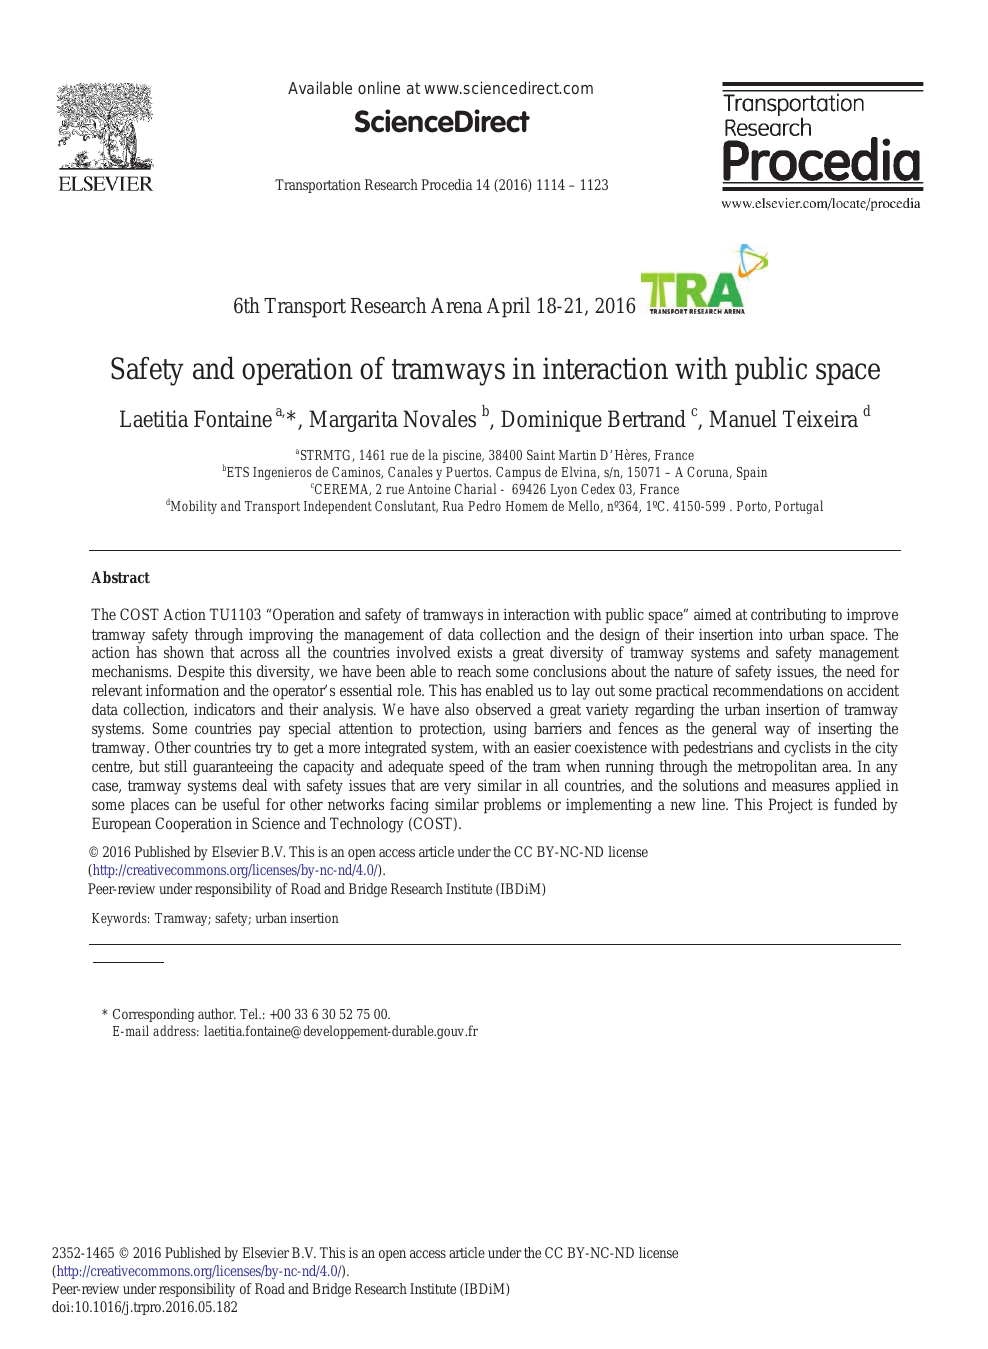 Safety And Operation Of Tramways In Interaction With Public ... avec Piscine Charial